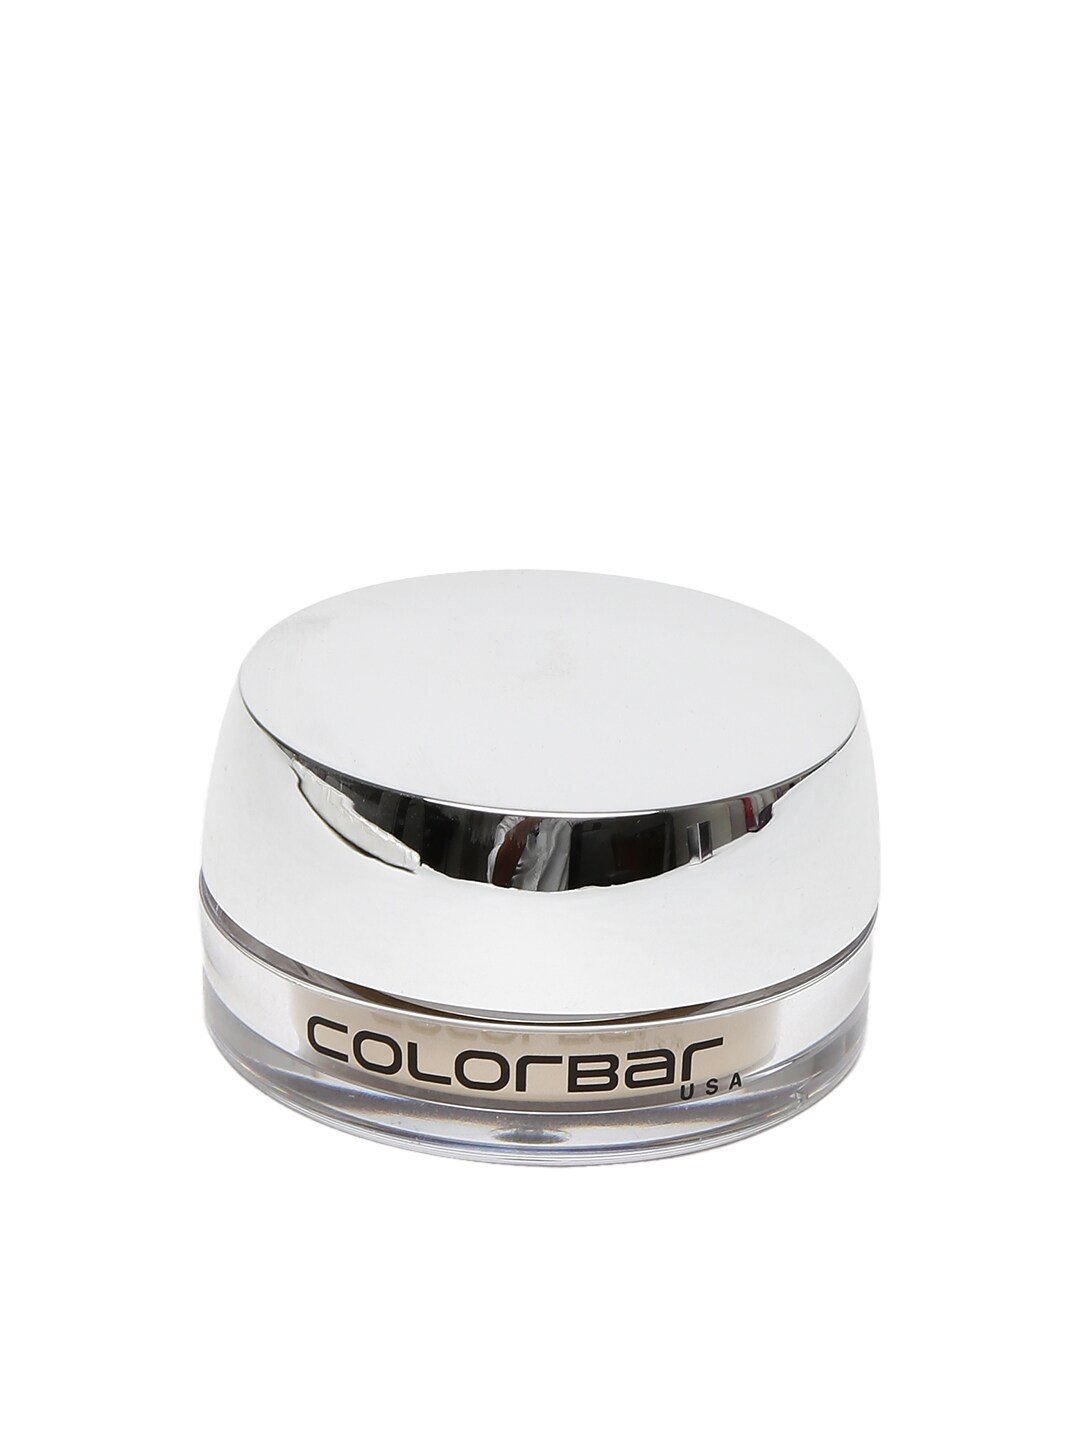 Colorbar Flawless Finish Mild Latte Mousse Foundation FFMF003 image